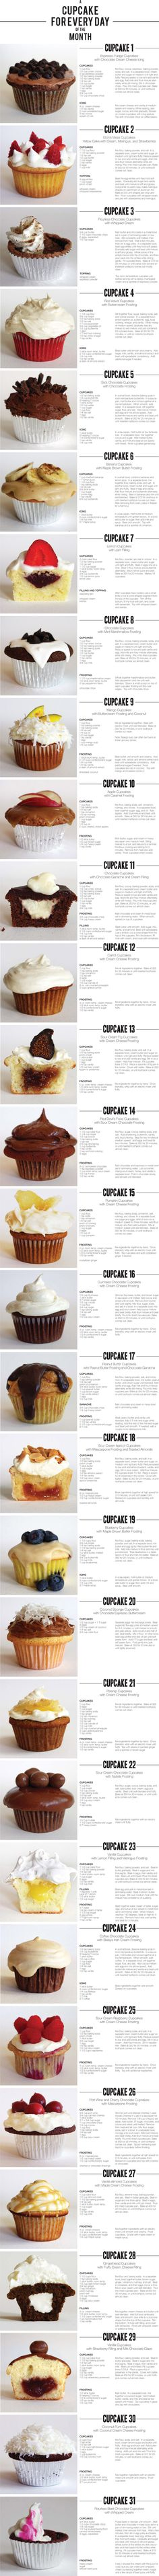 A cupcake for every day of the month. Couldn't really commit to making cupcakes everyday but here are a ton of yummy recipes in one place! Someone else is welcome to make me cupcakes every day if you'd like ; Cupcake Recipes, Cupcake Cakes, Dessert Recipes, Cupcake Ideas, Cup Cakes, Cupcake Flavors, Dessert Ideas, Yummy Treats, Sweet Treats